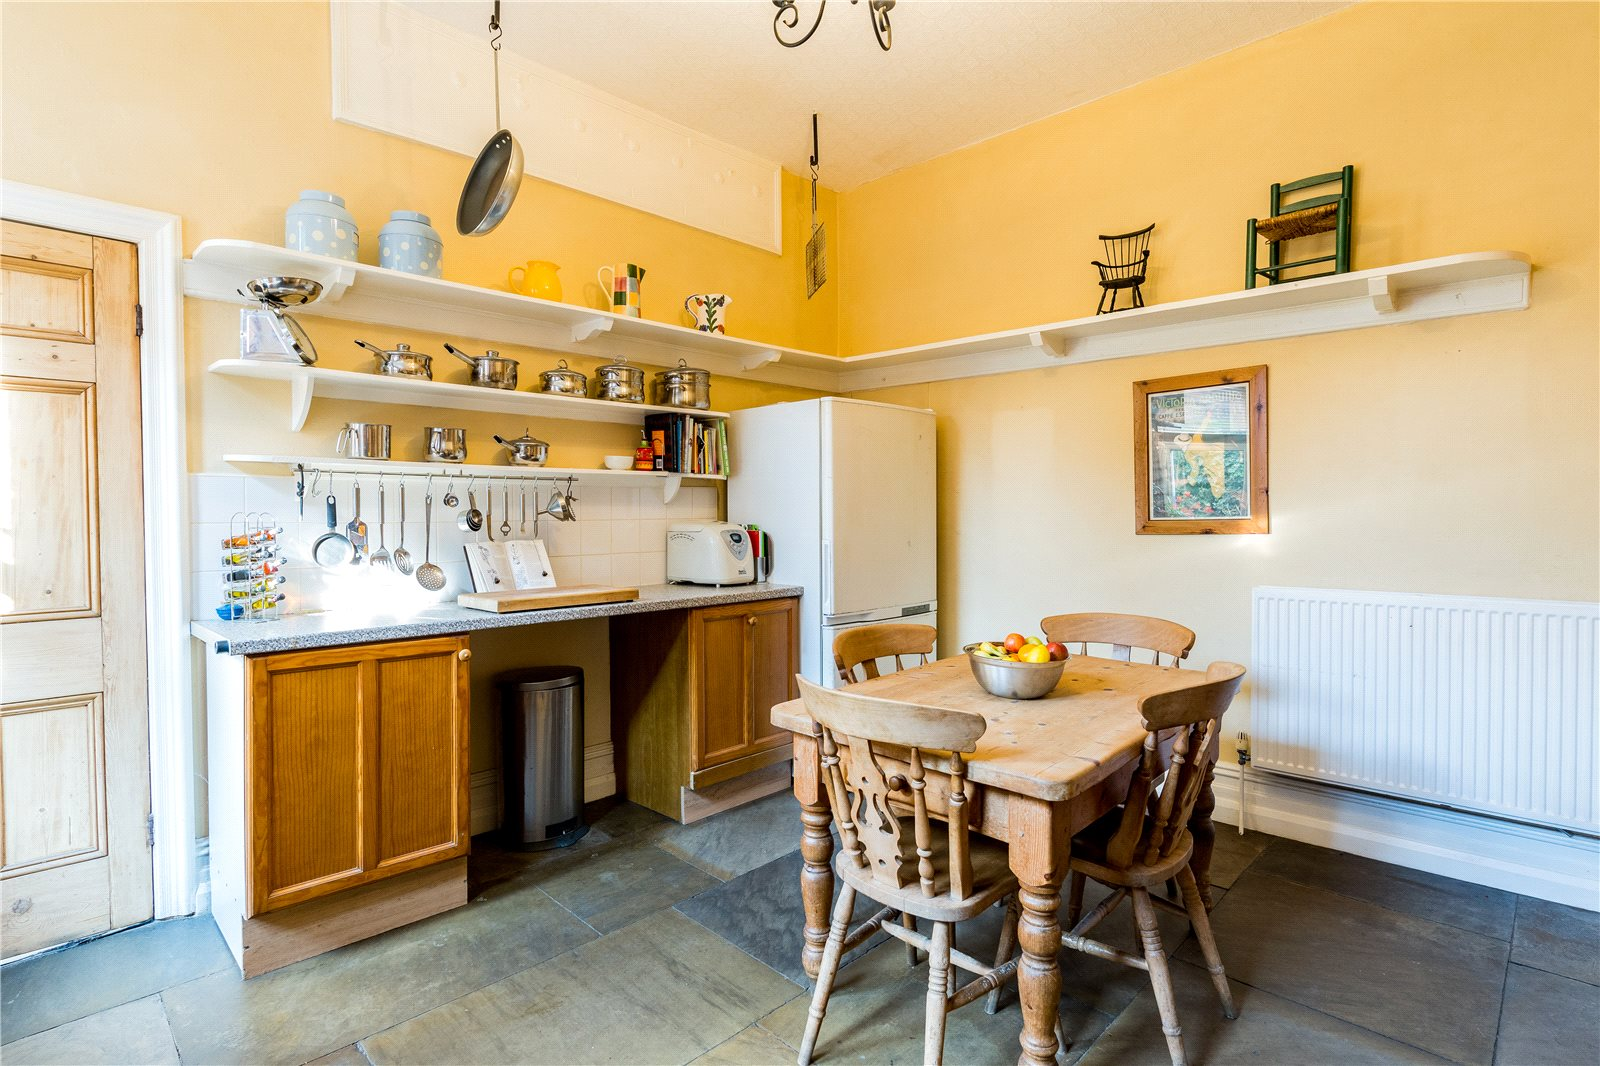 Property for sale in Wakefield, kitchen dining area, characterful